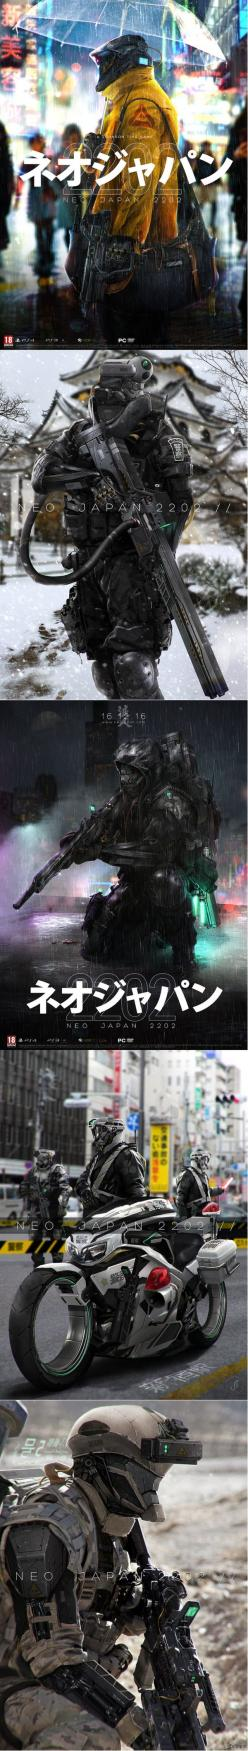 NEO JAPAN 2202 by Johnsonting deviant art. http://johnsonting.deviantart.com/art/NEO-JAPAN-2202-KIKAI-YOHEI-436385738: Futuristic Soldier, Deviantart, Deviant Art, Mecha, Concept Art, Johnsonting Deviant, Scifi